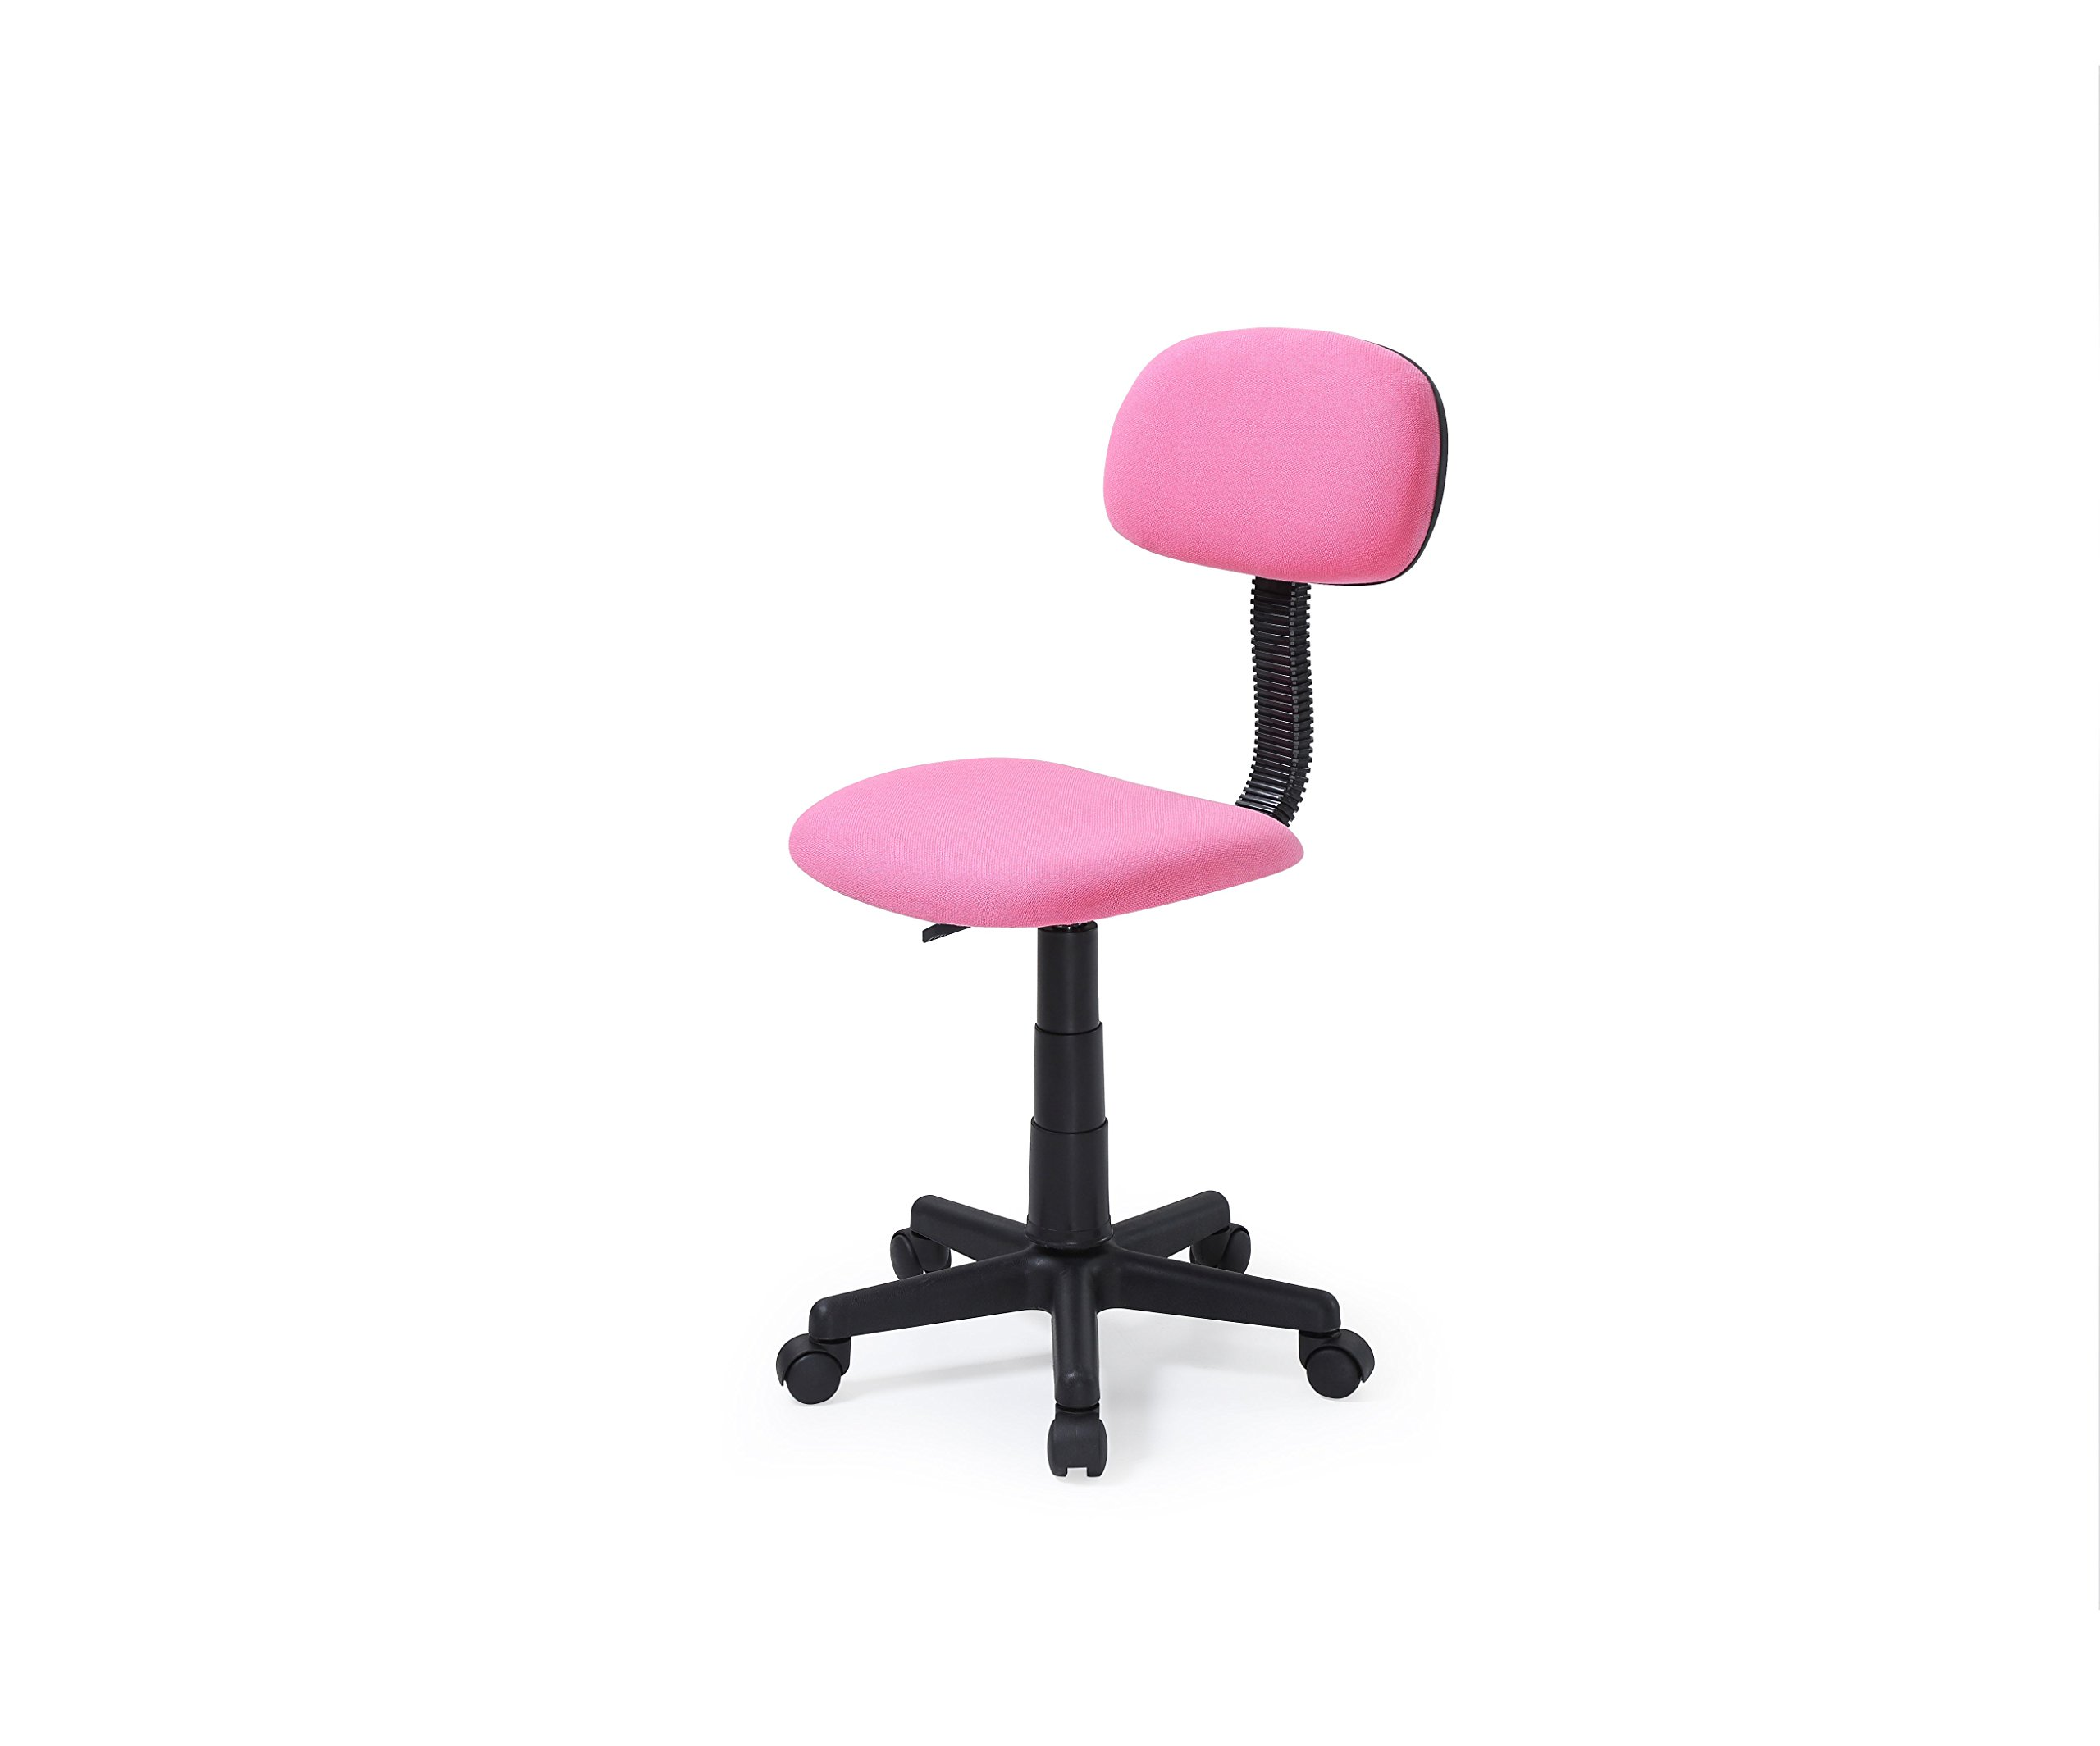 Hodedah Armless Task Chair with Adjustable Height and Swivel Functionality, Pink